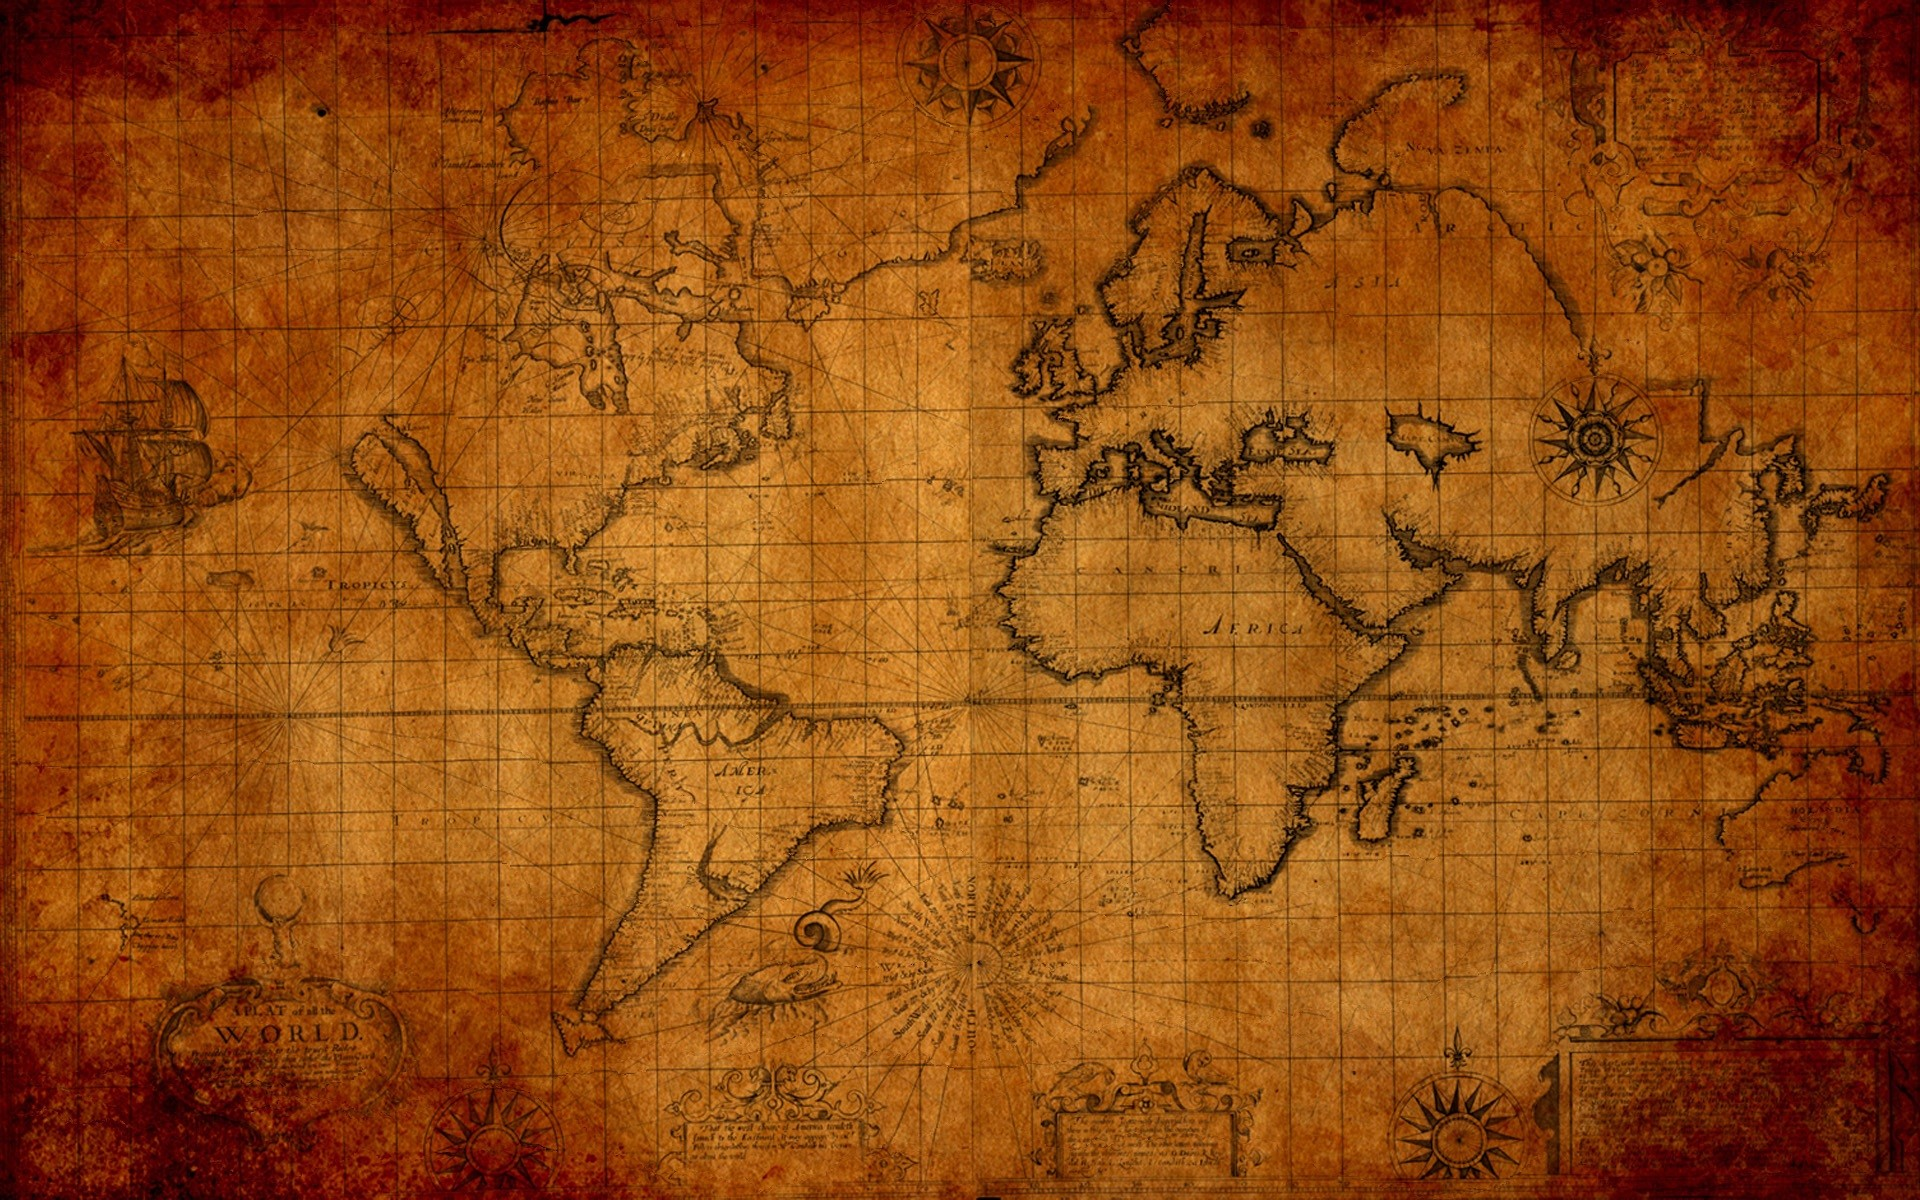 World map desktop wallpaper 54 images 1920x1200 typographic world map night wallpapers hd gumiabroncs Gallery